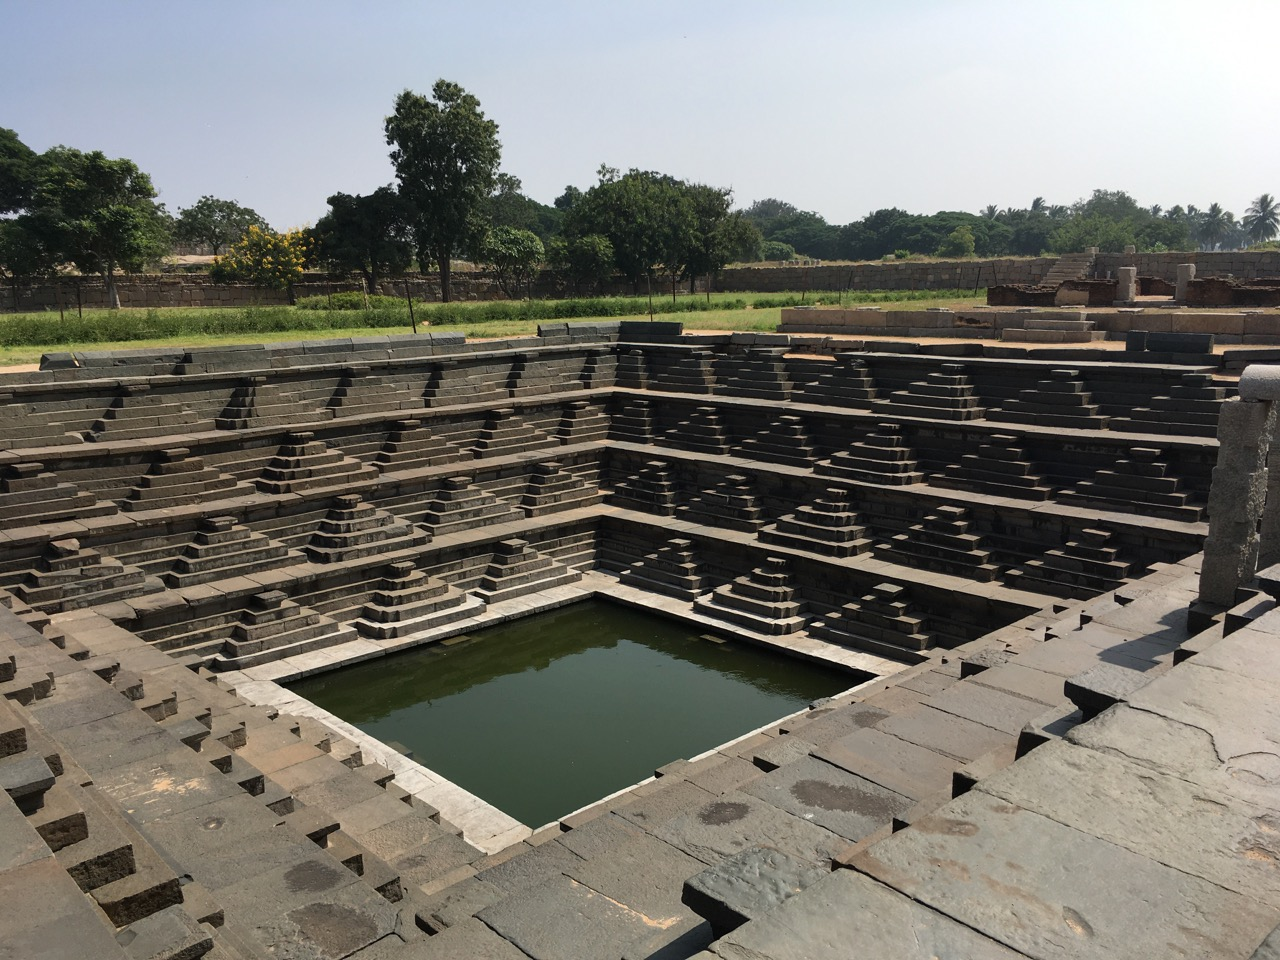 These stepped ponds are part of life in South India, where they supply water to temples and communities and recharge groundwater. Hampi, Karnataka. Photo by Erica Gies.